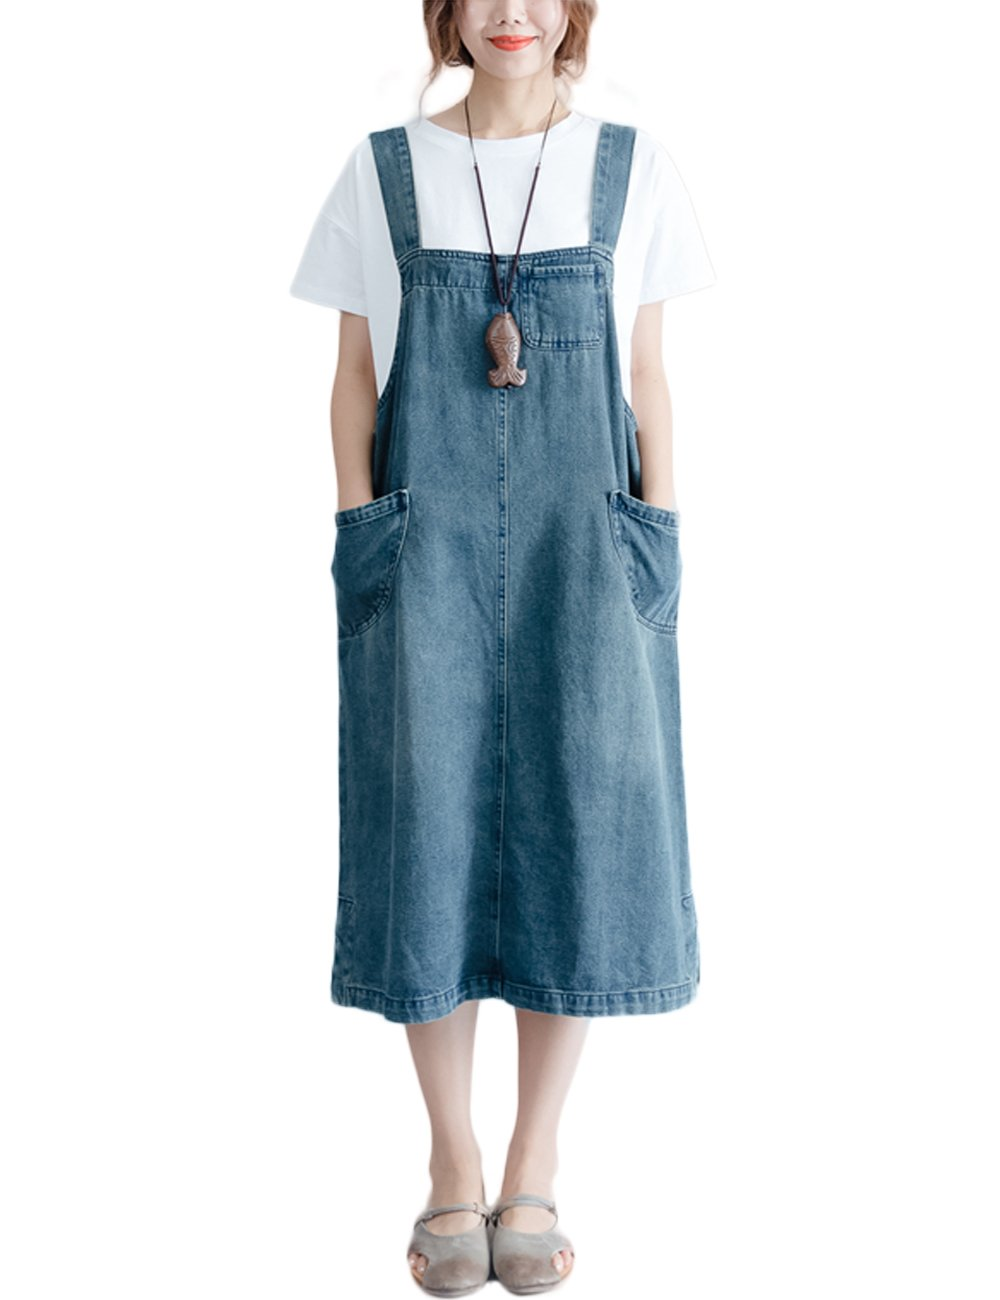 4cb89b7271f1 Innifer Overall Pinafore Dress Skirt/Women's Loose Casual Strap Jeans ...